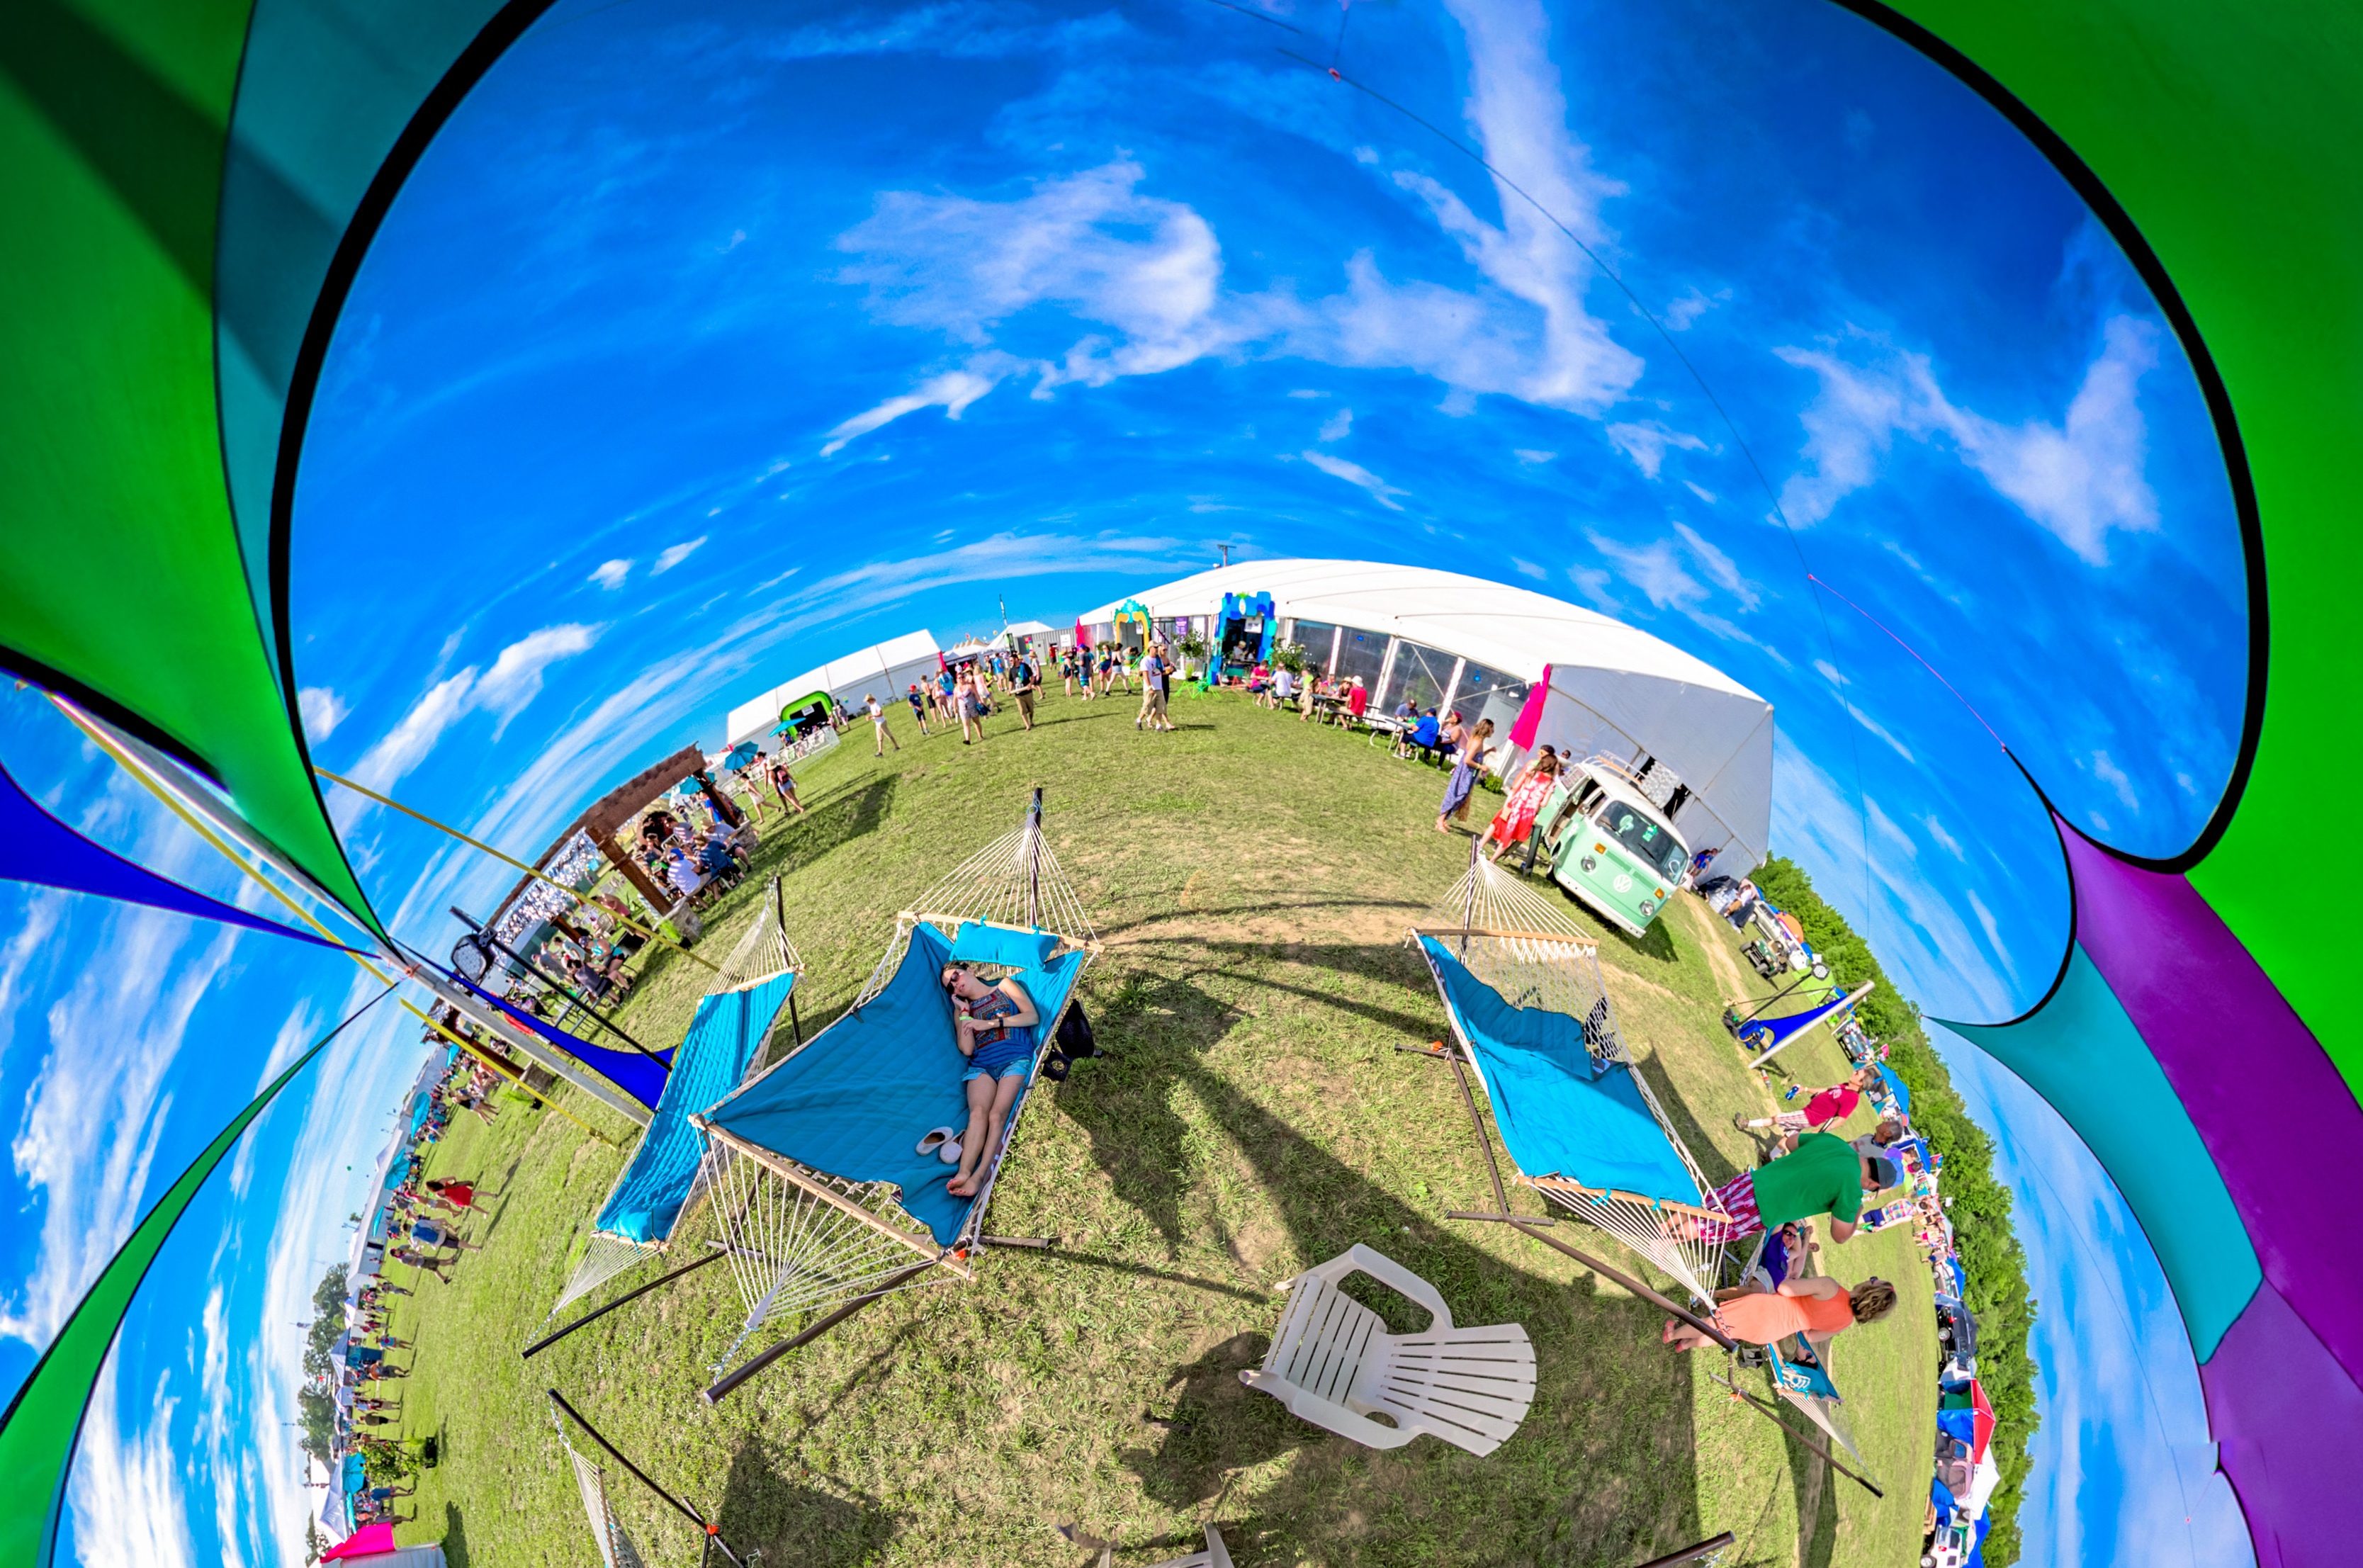 vip camping hammocks copy Win VIP tickets to Bonnaroo Music Festival 2017